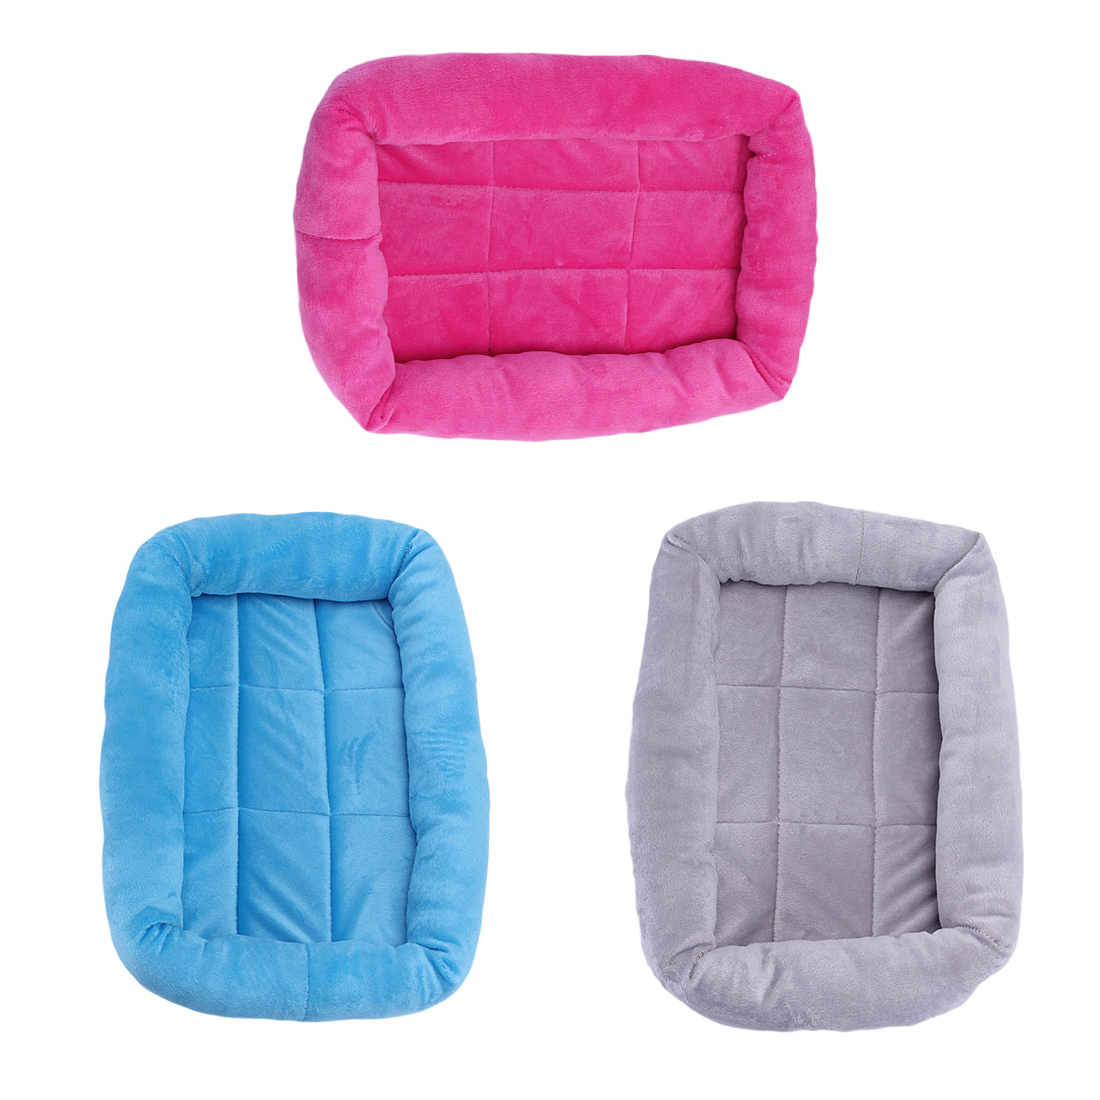 High Quality Soft Small Breed Dog Bed Sofa Mat House Cat Pet Bed House For Small Dogs Blanket Cushion Basket Supplies #2